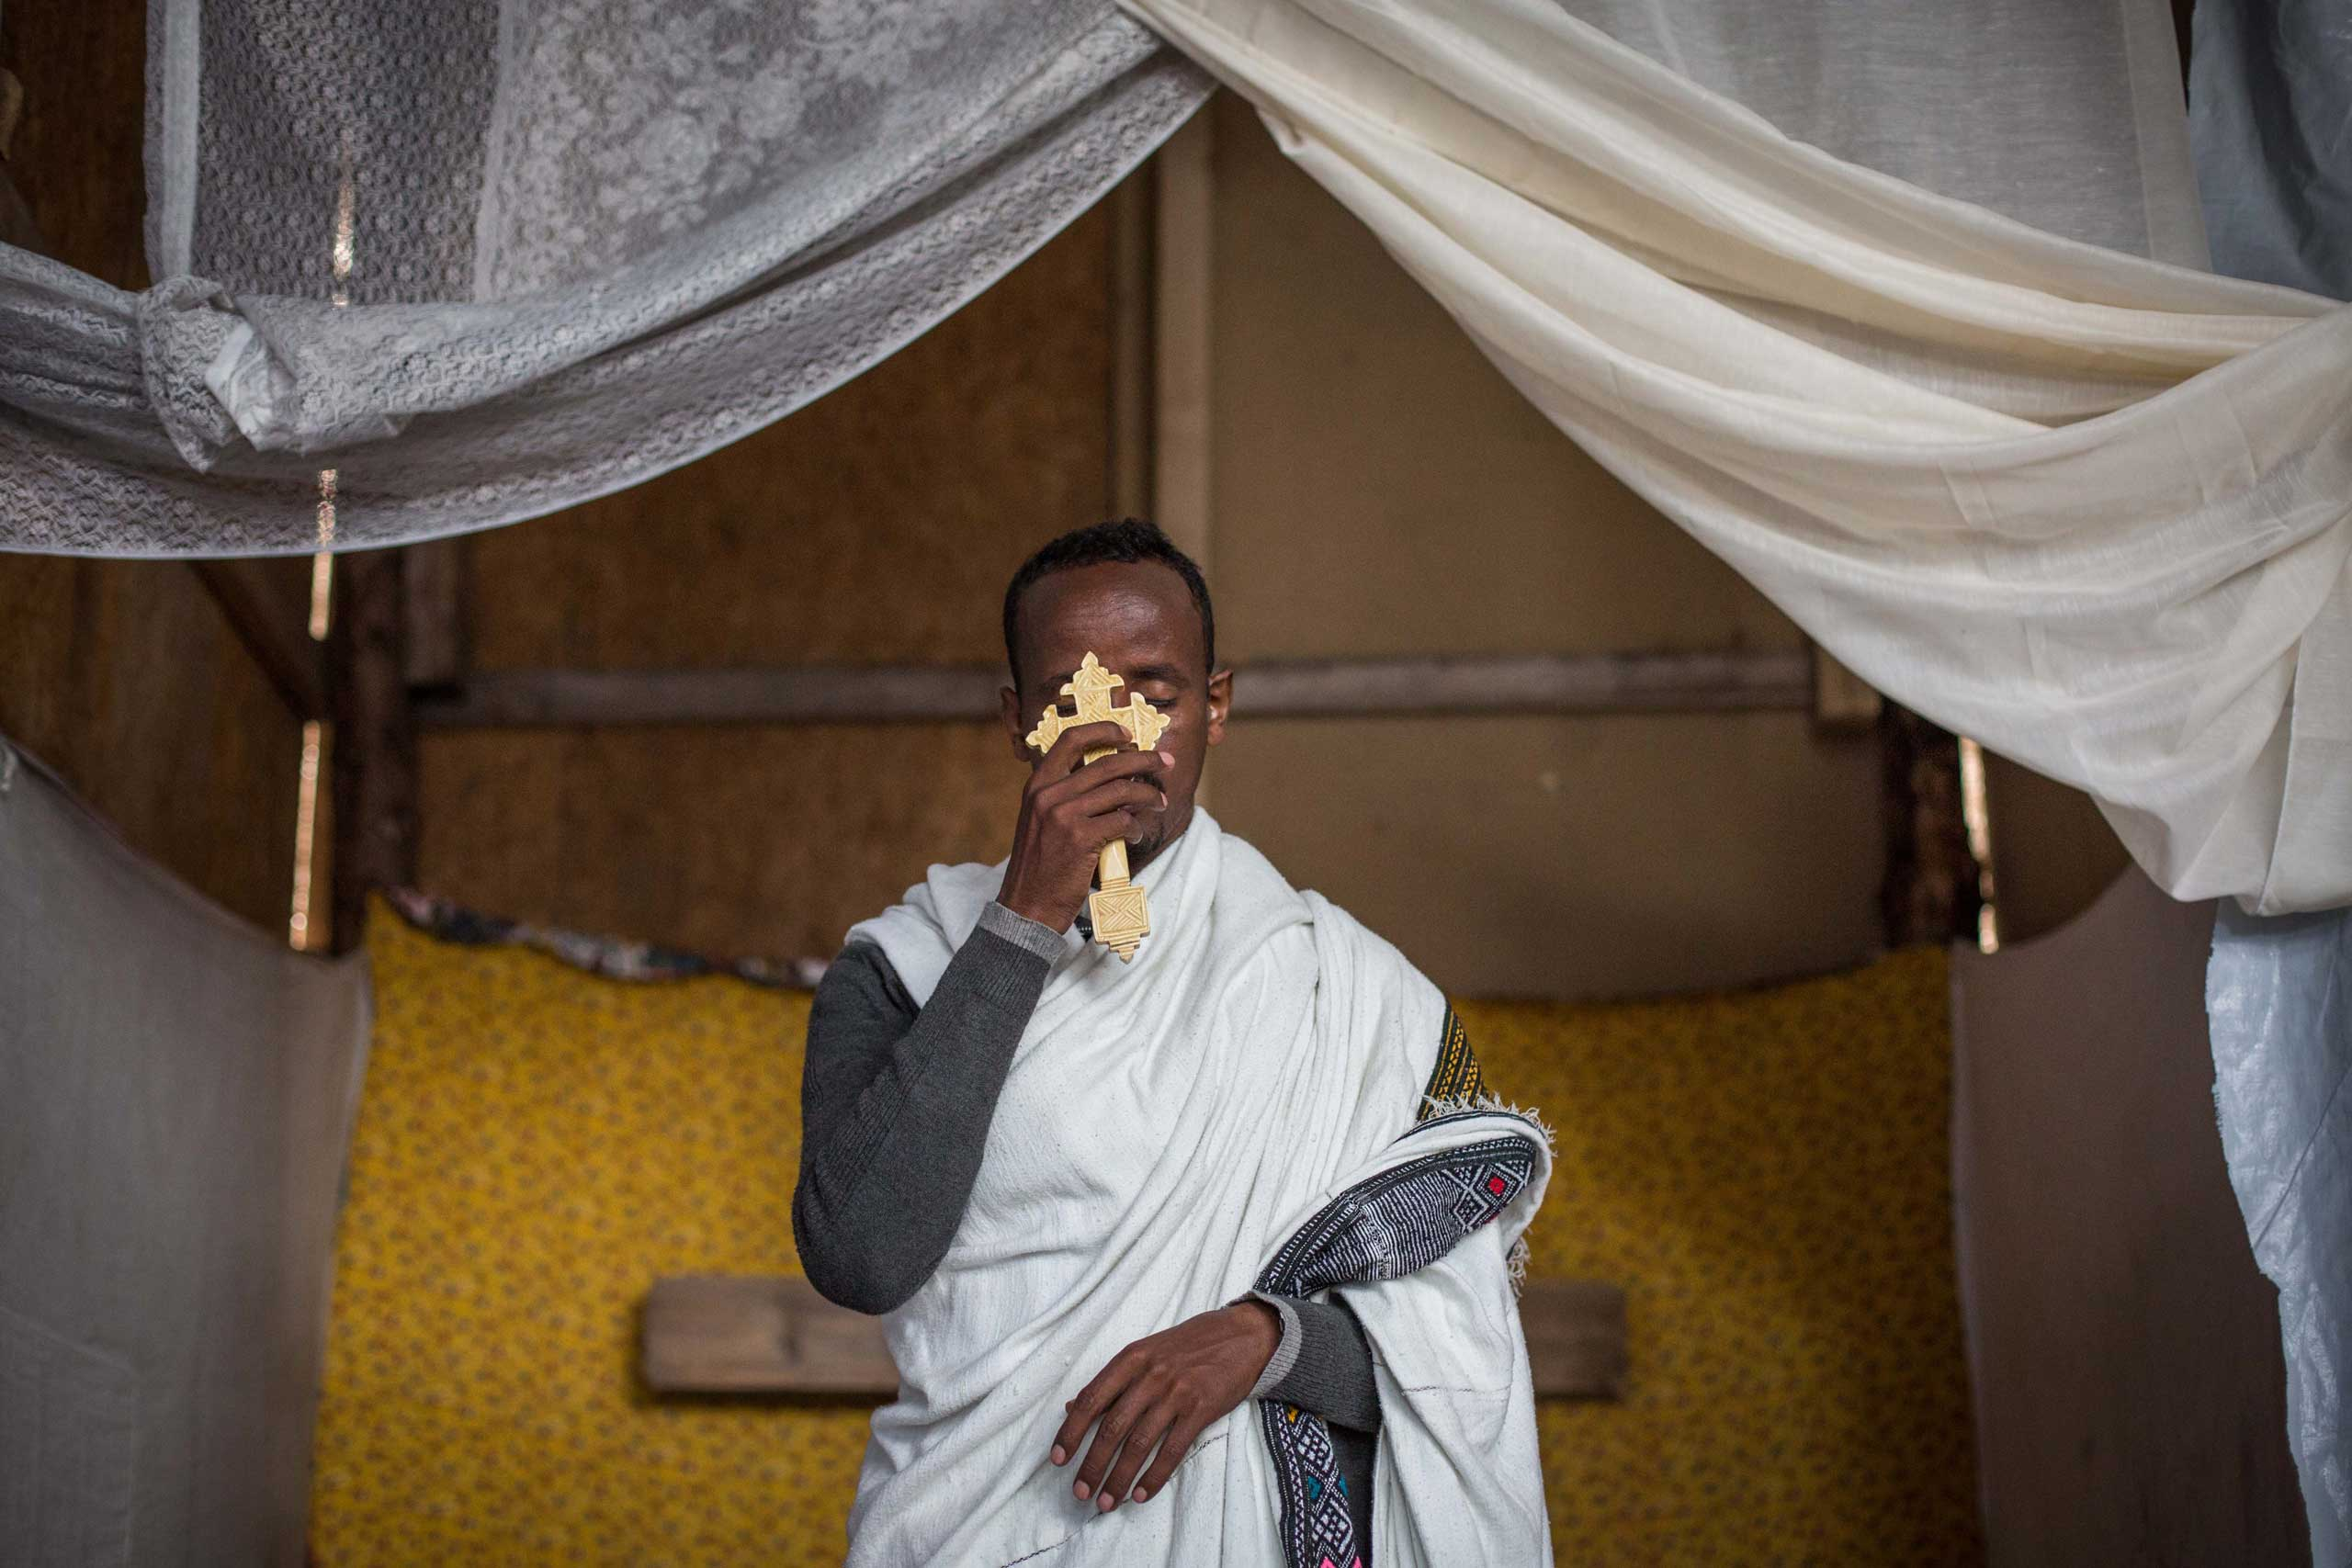 Kibrom Kasta leads an Orthodox service for Ethiopian and Eritrean worshippers at a church in a make shift camp near the port of Calais, on Aug. 2, 2015.